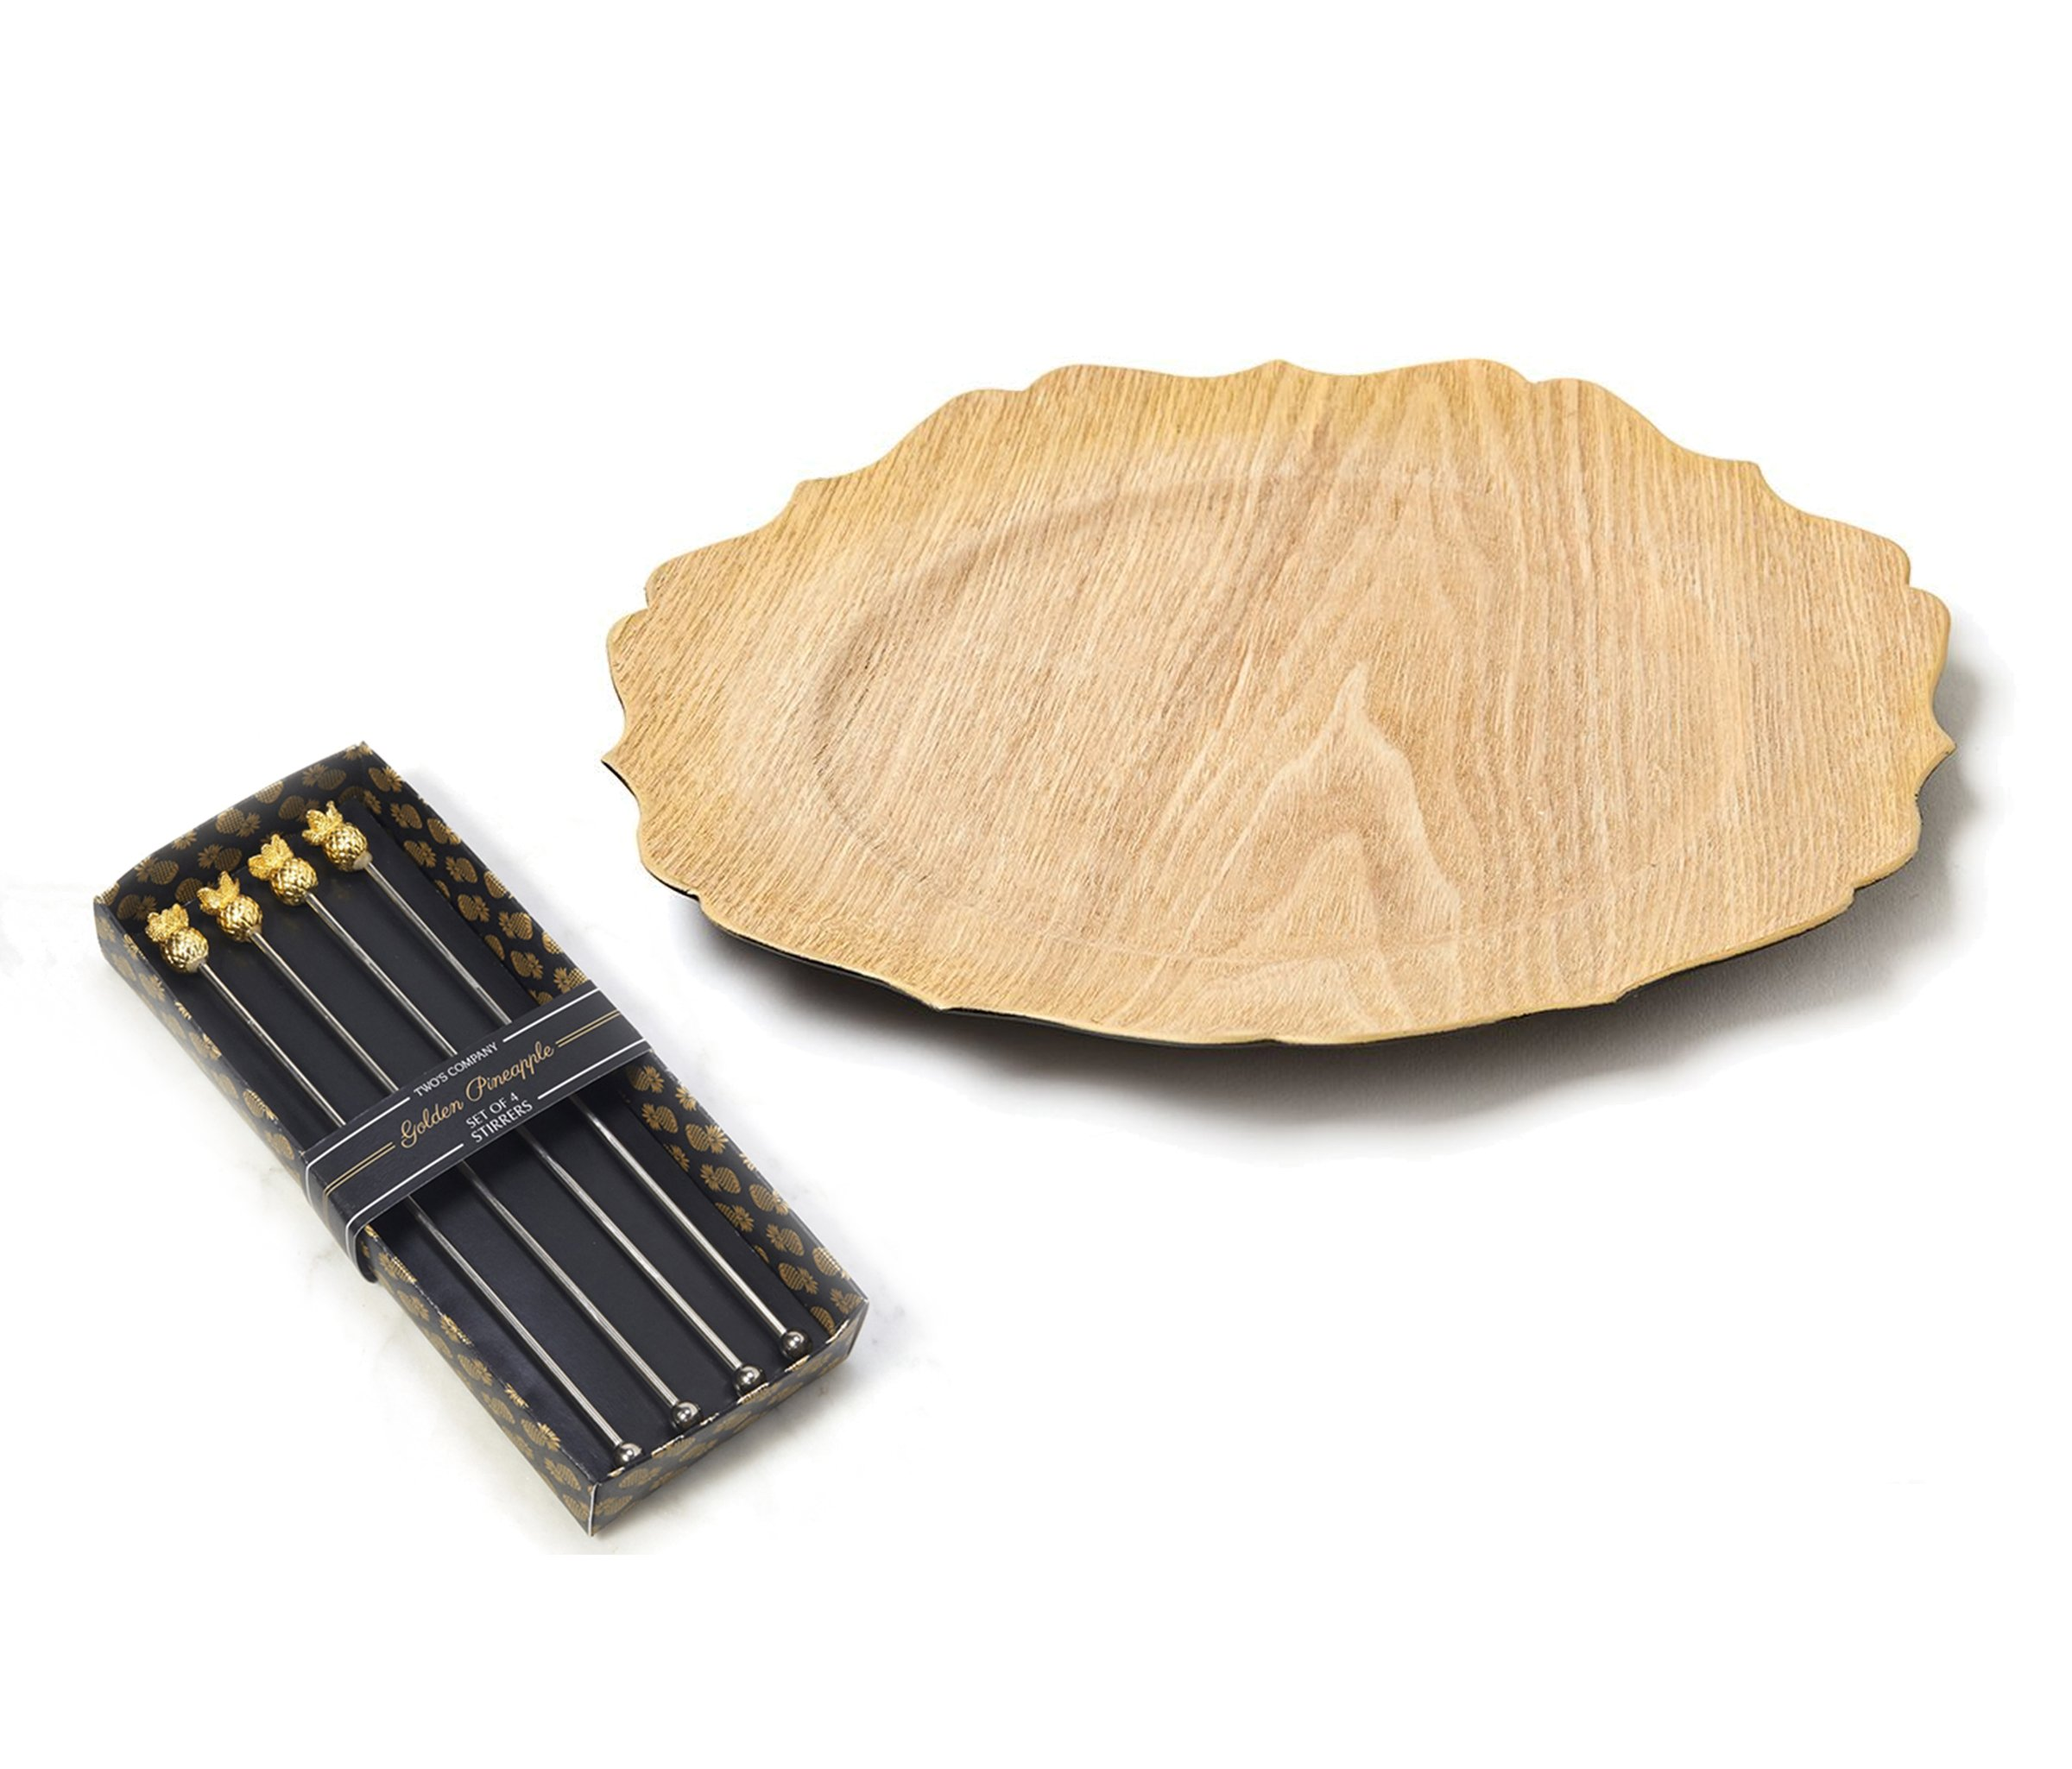 Mozlly Value Pack - Two's Company Golden Pineapple Stainless Steel Cocktail Drink Stirrers (4pc Set) AND Good Wood Scalloped Oak Veneer Charger - Tropical Serveware (2 Items)